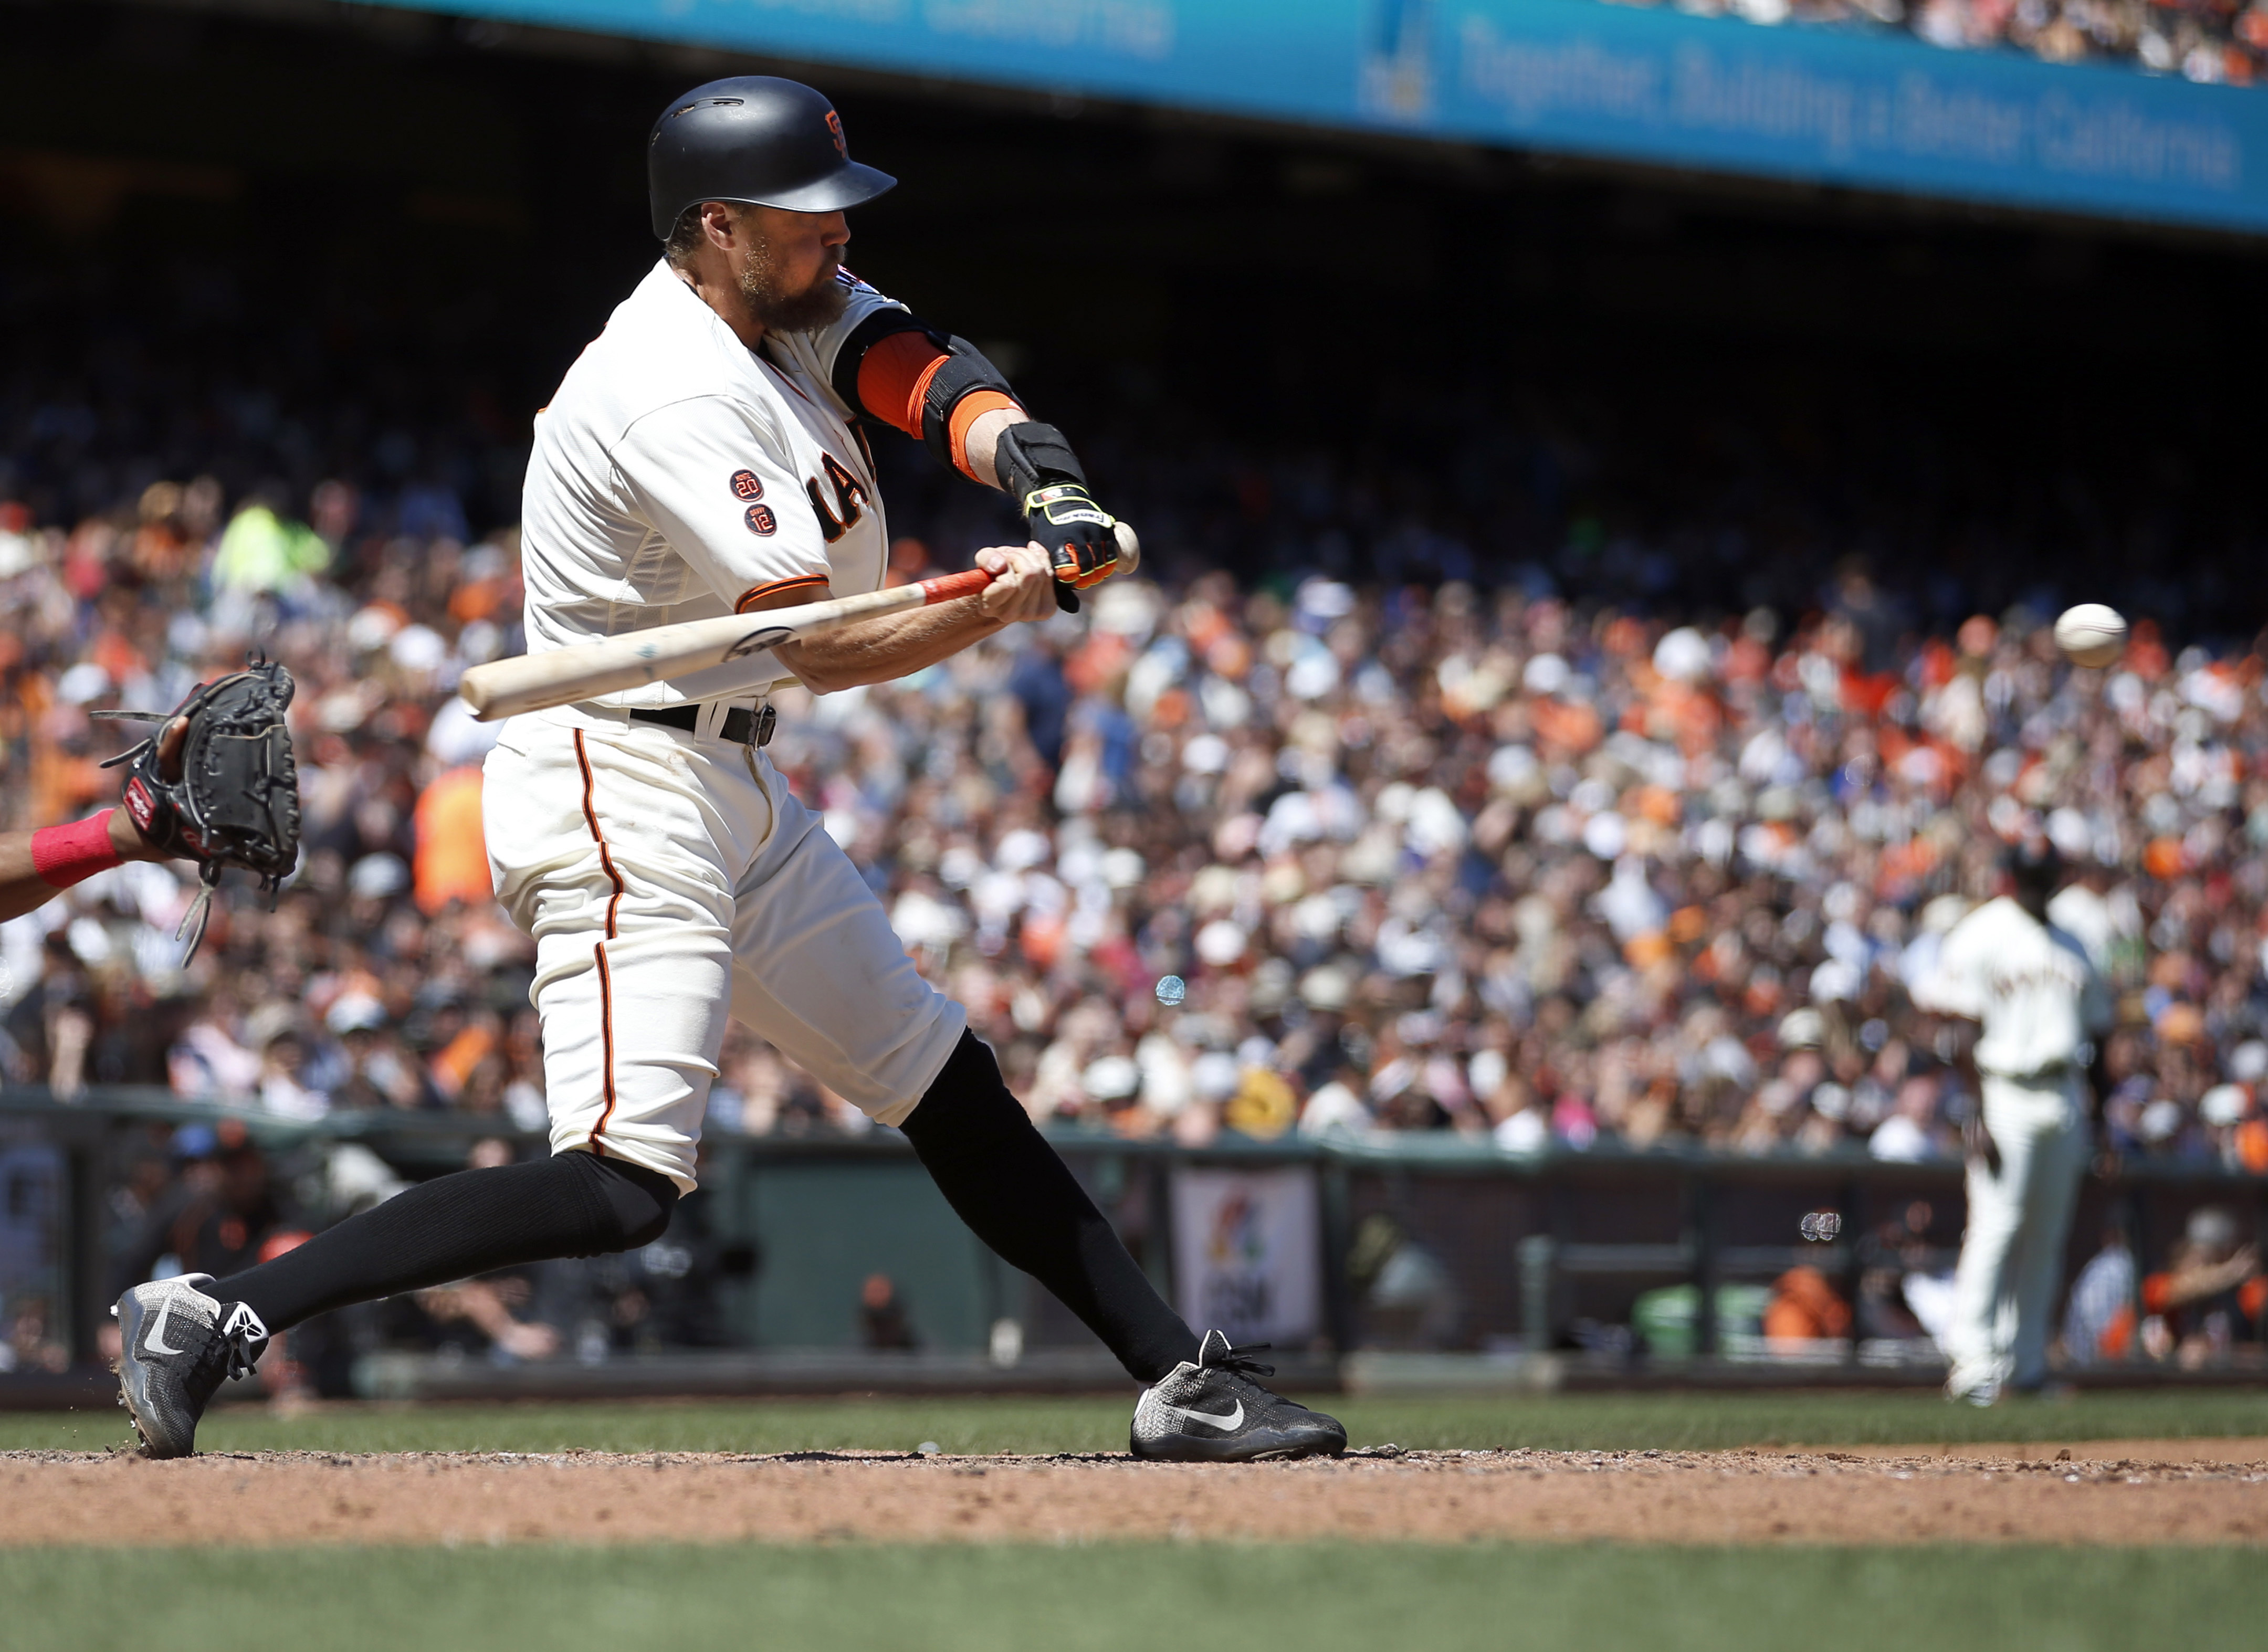 San Francisco Giants' Hunter Pence hits a single against the Washington Nationals during the fifth inning of a baseball game in San Francisco, Saturday, July 30, 2016. (AP Photo/Tony Avelar)